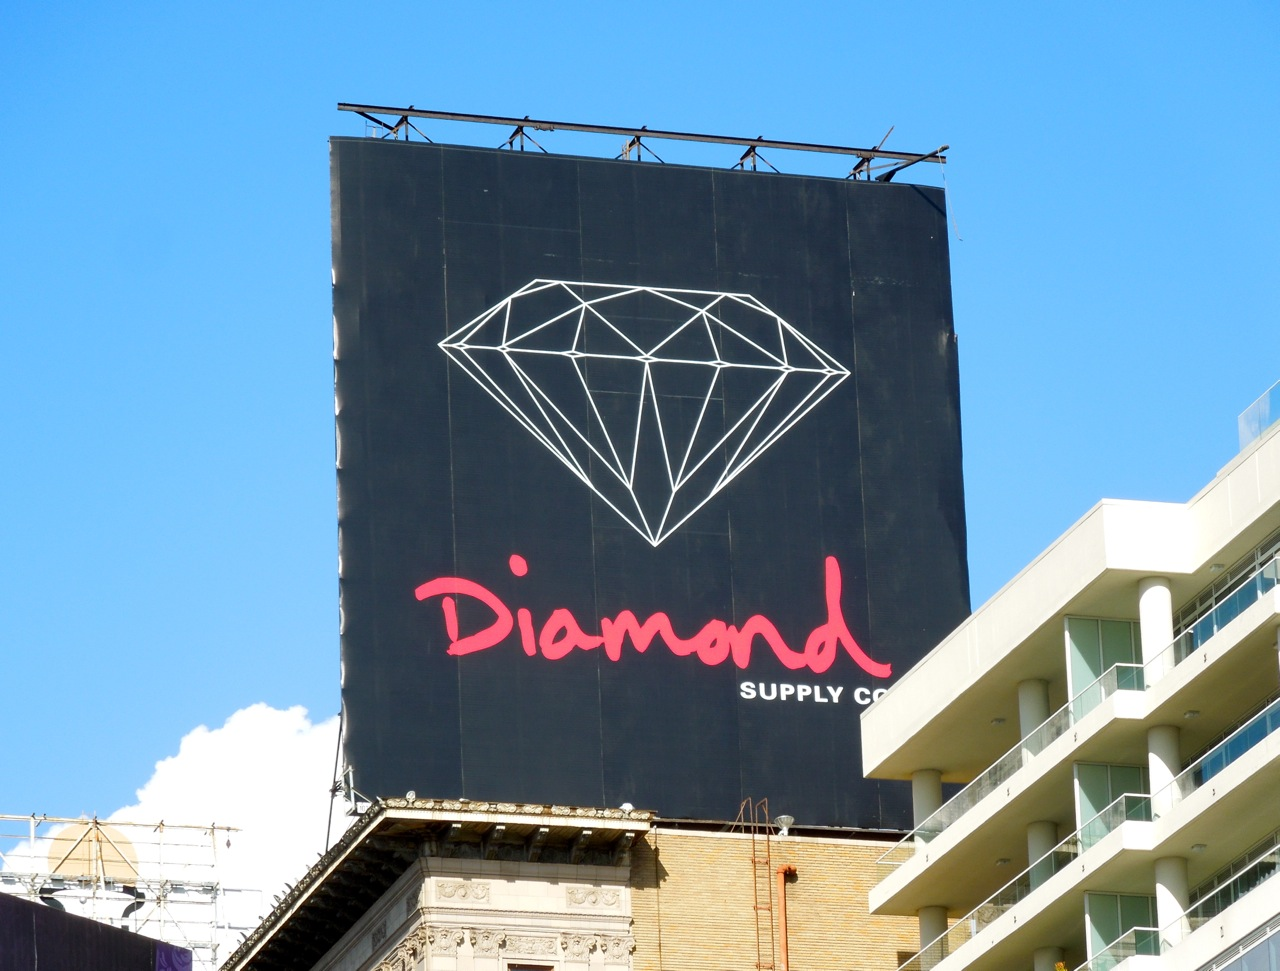 http://1.bp.blogspot.com/-w84i7a58Tfs/UK17dHtoIVI/AAAAAAAA4f8/RWhzaeZCyXU/s1600/Diamond+supply+billboard.jpg